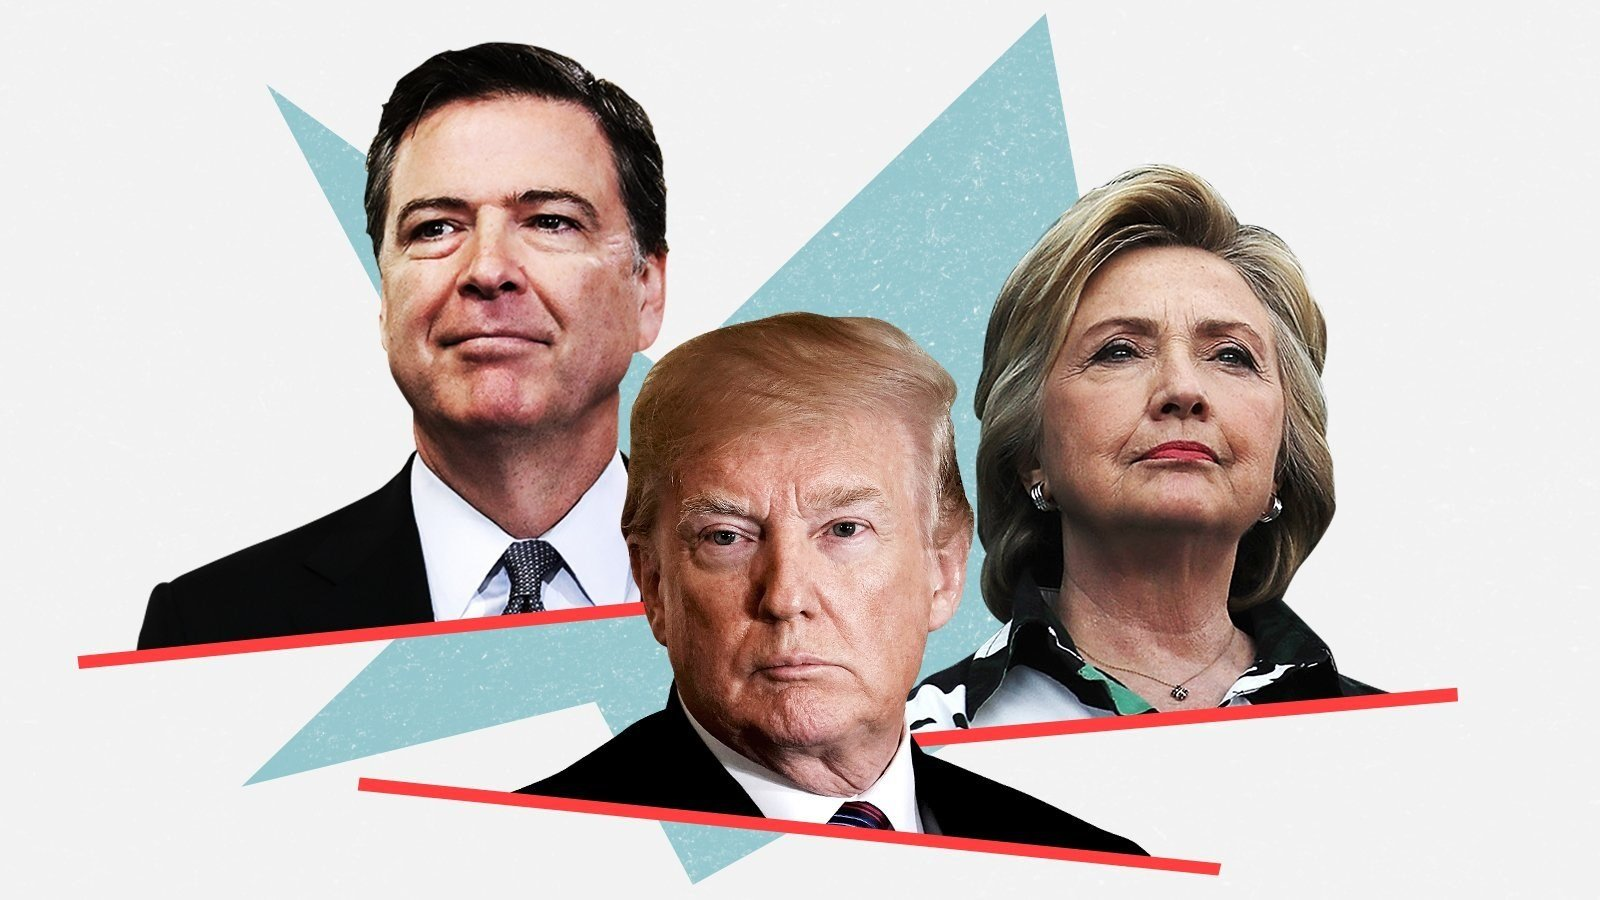 The Justice Department's internal watchdog found that former FBI Director James Comey's actions in the Hillary Clinton email investigation deviated from the department's norms but that Comey was not motivated by political bias, according to two sources...